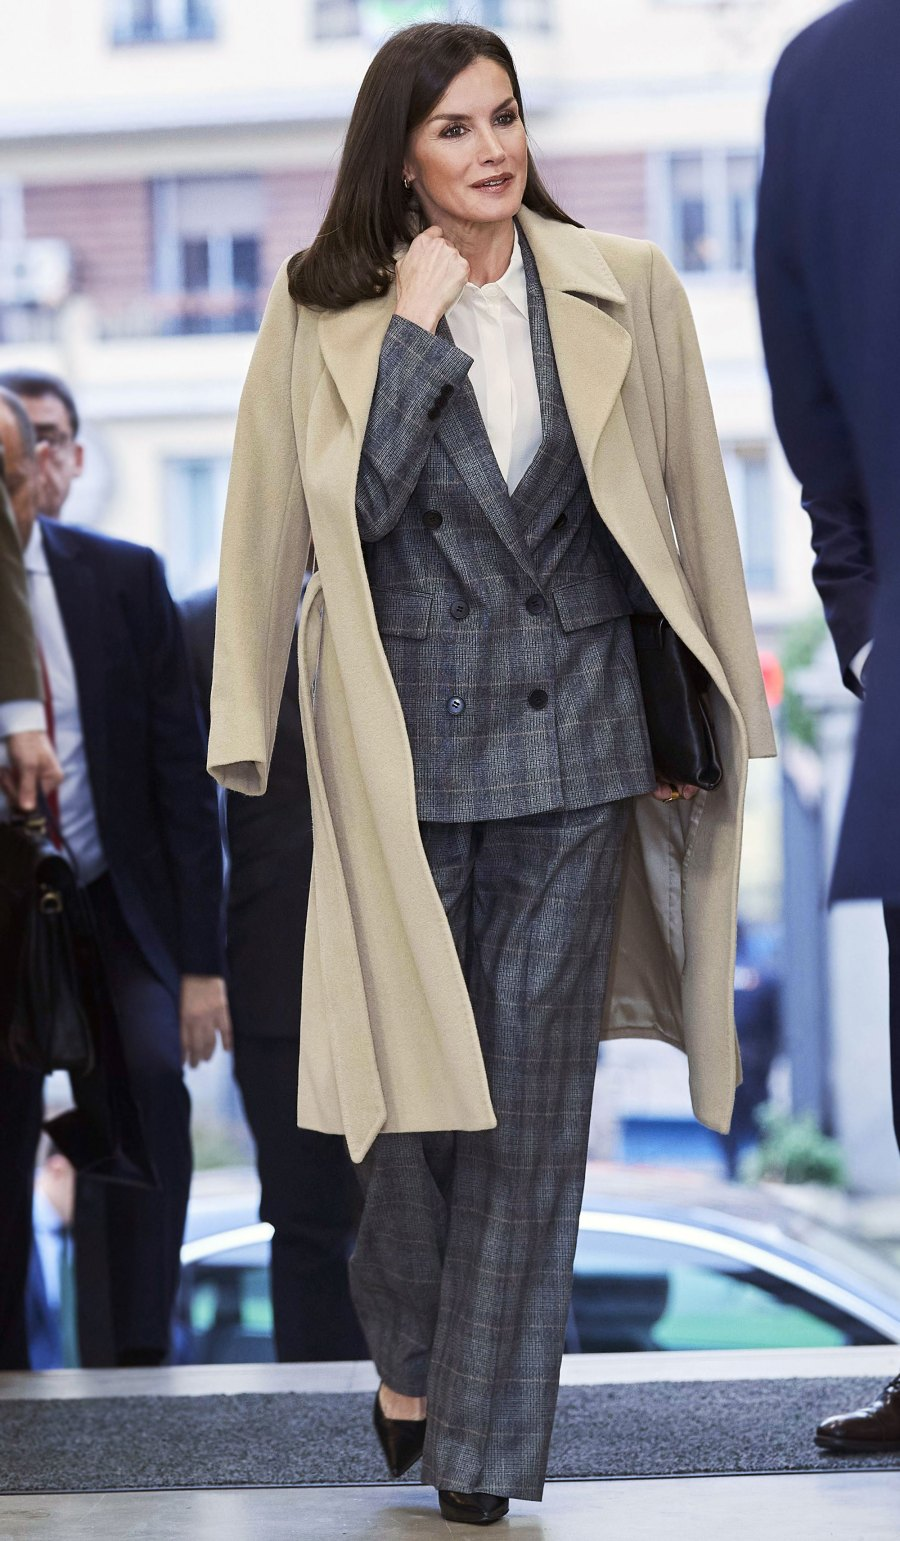 Queen Letizia Plaid Suit January 16, 2020